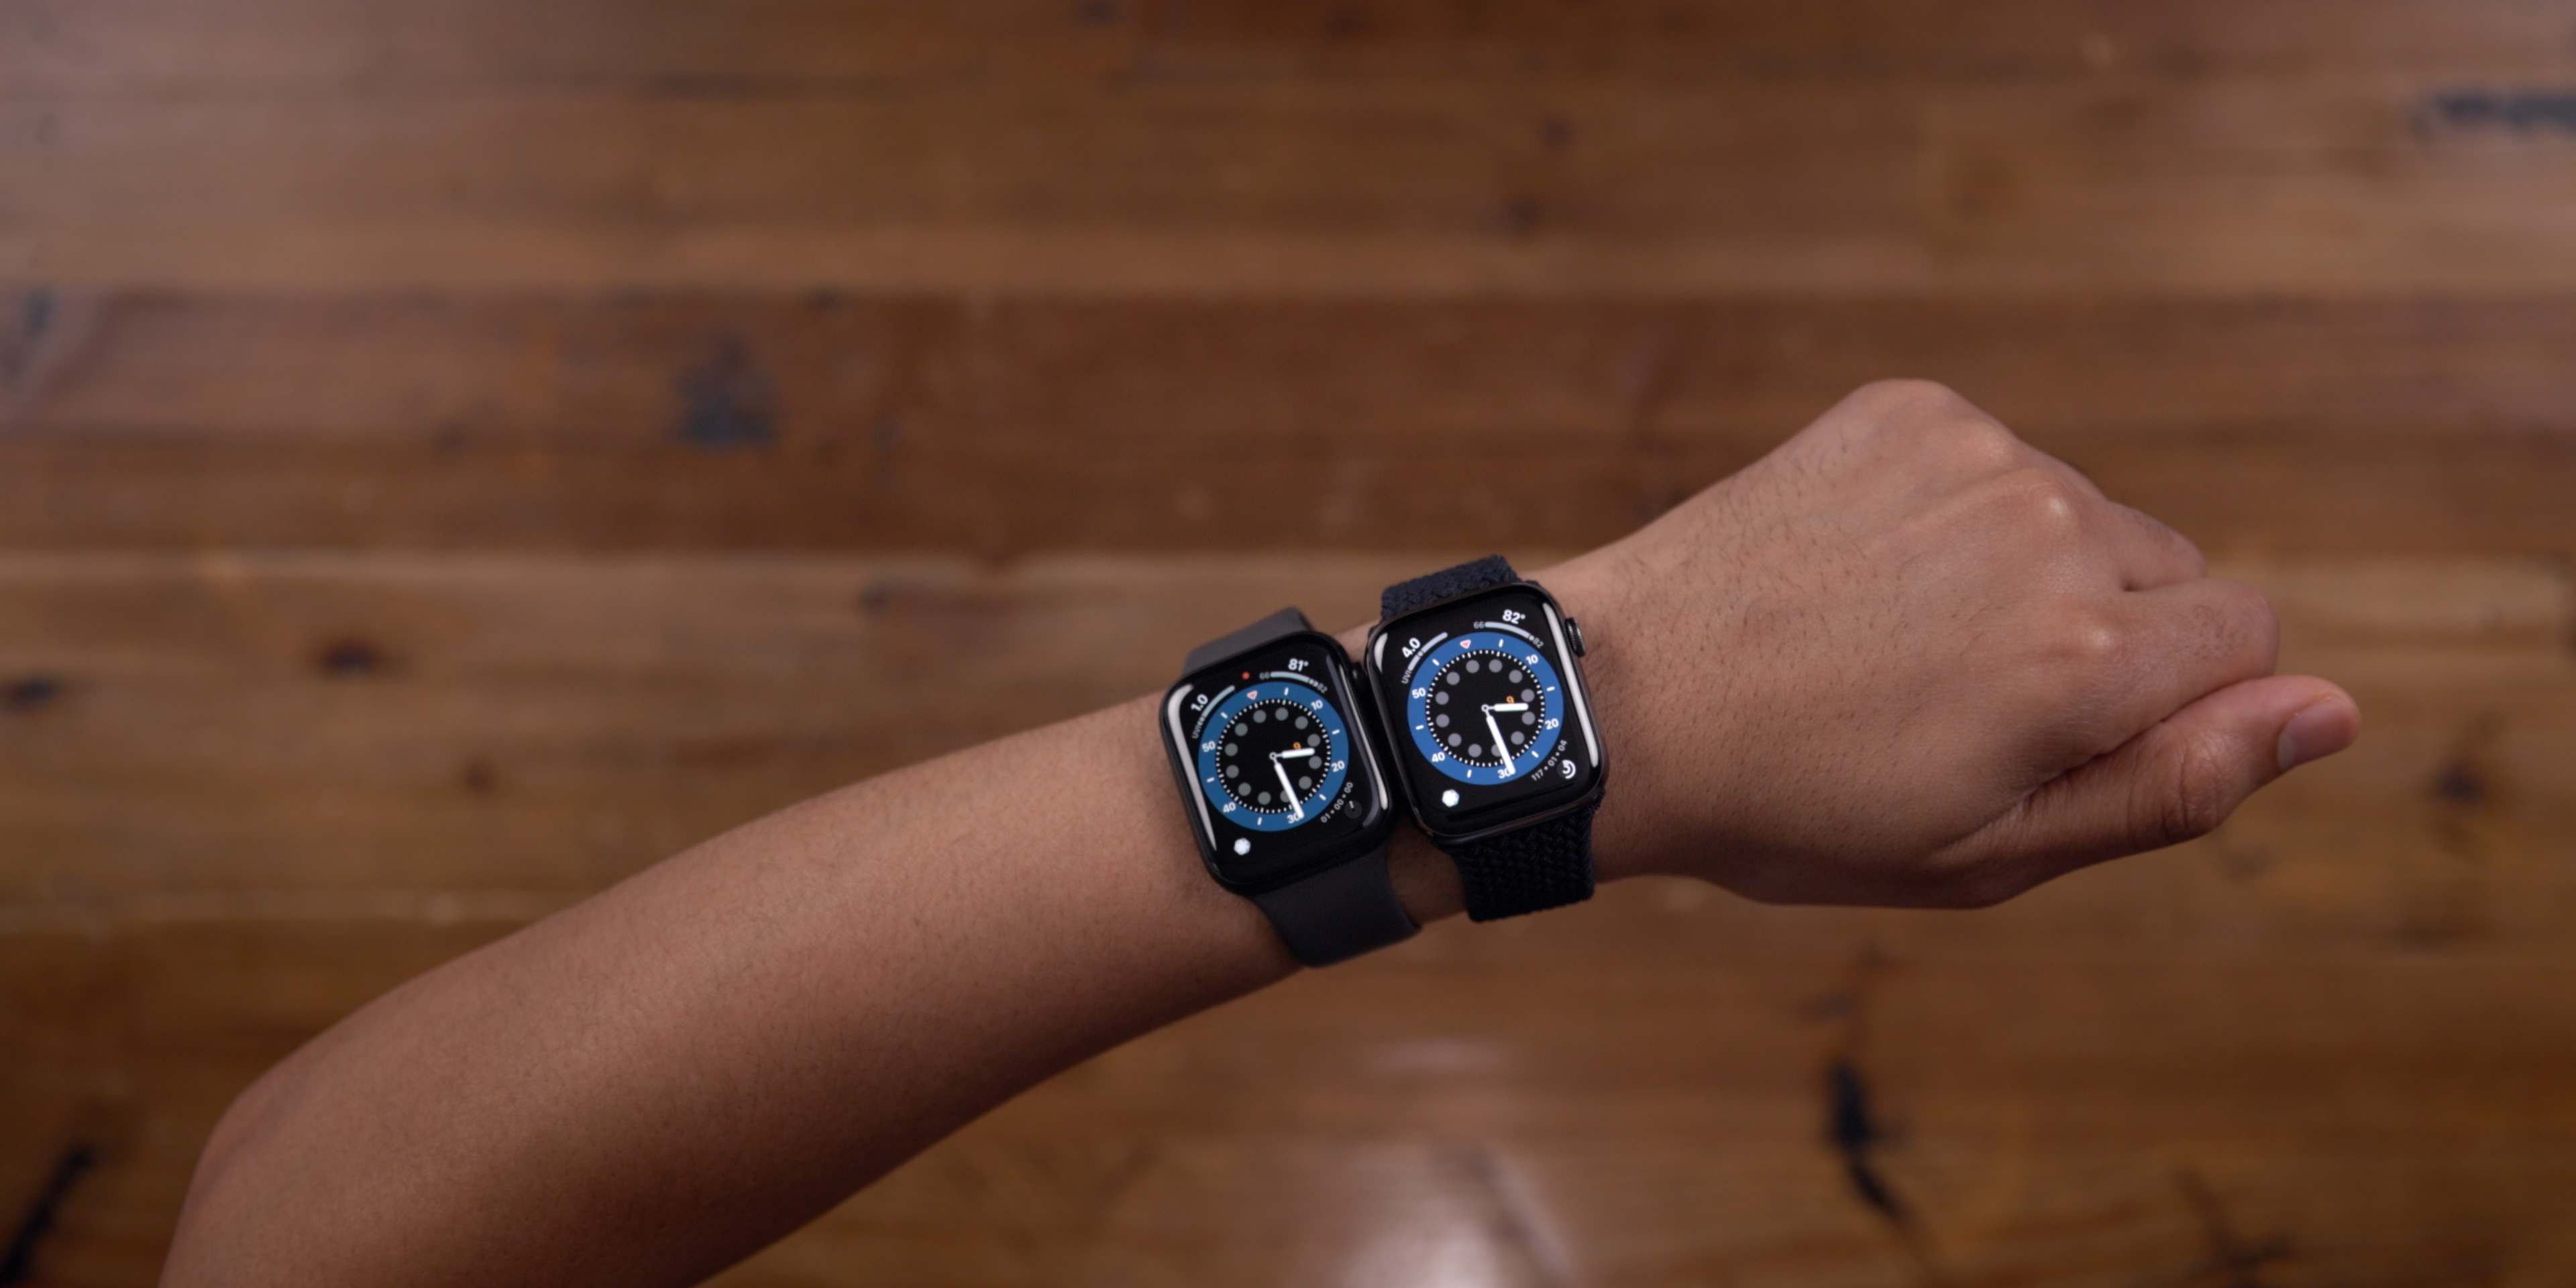 What apple watch should you buy series 6 brighter display wrist down sunlight